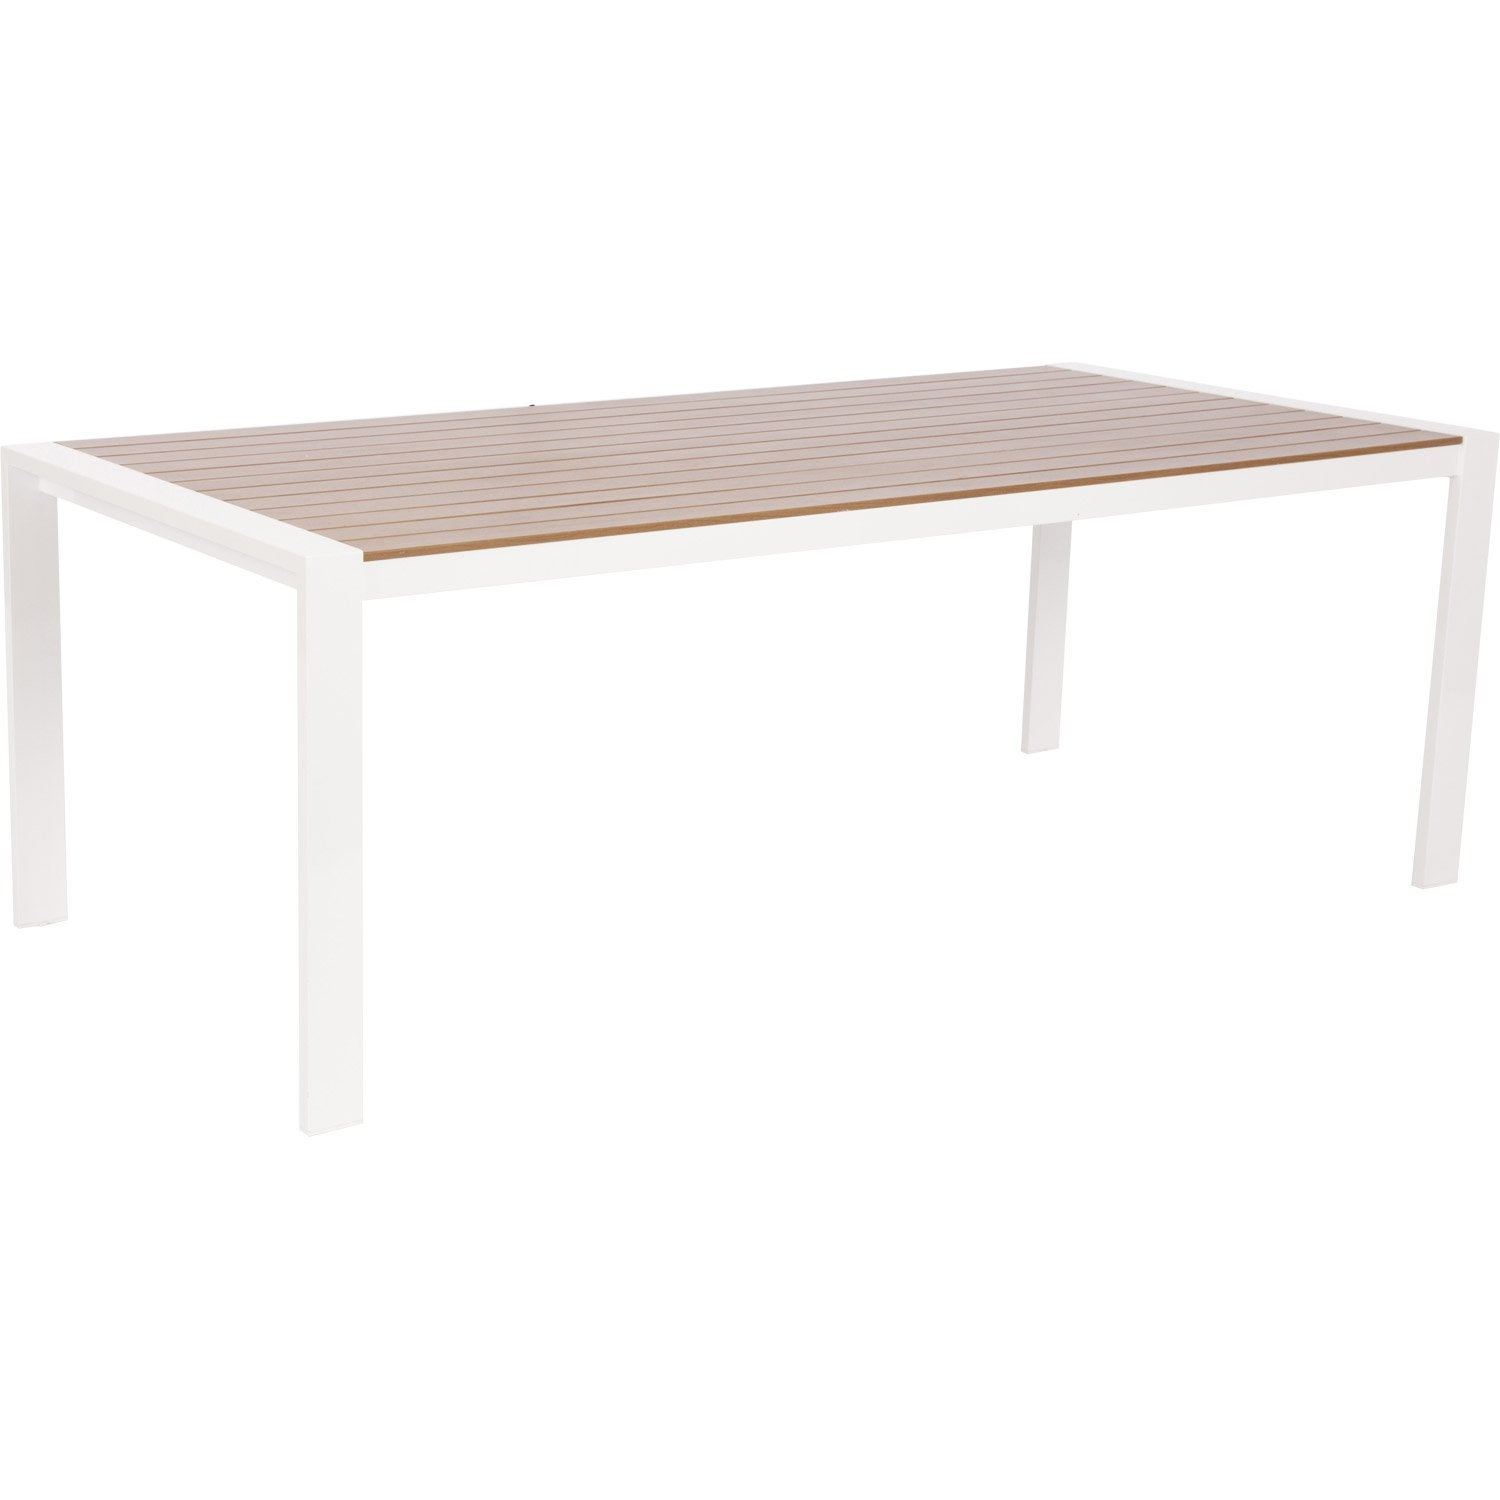 Table de jardin port nelson rectangulaire blanc for Table et chaise blanche